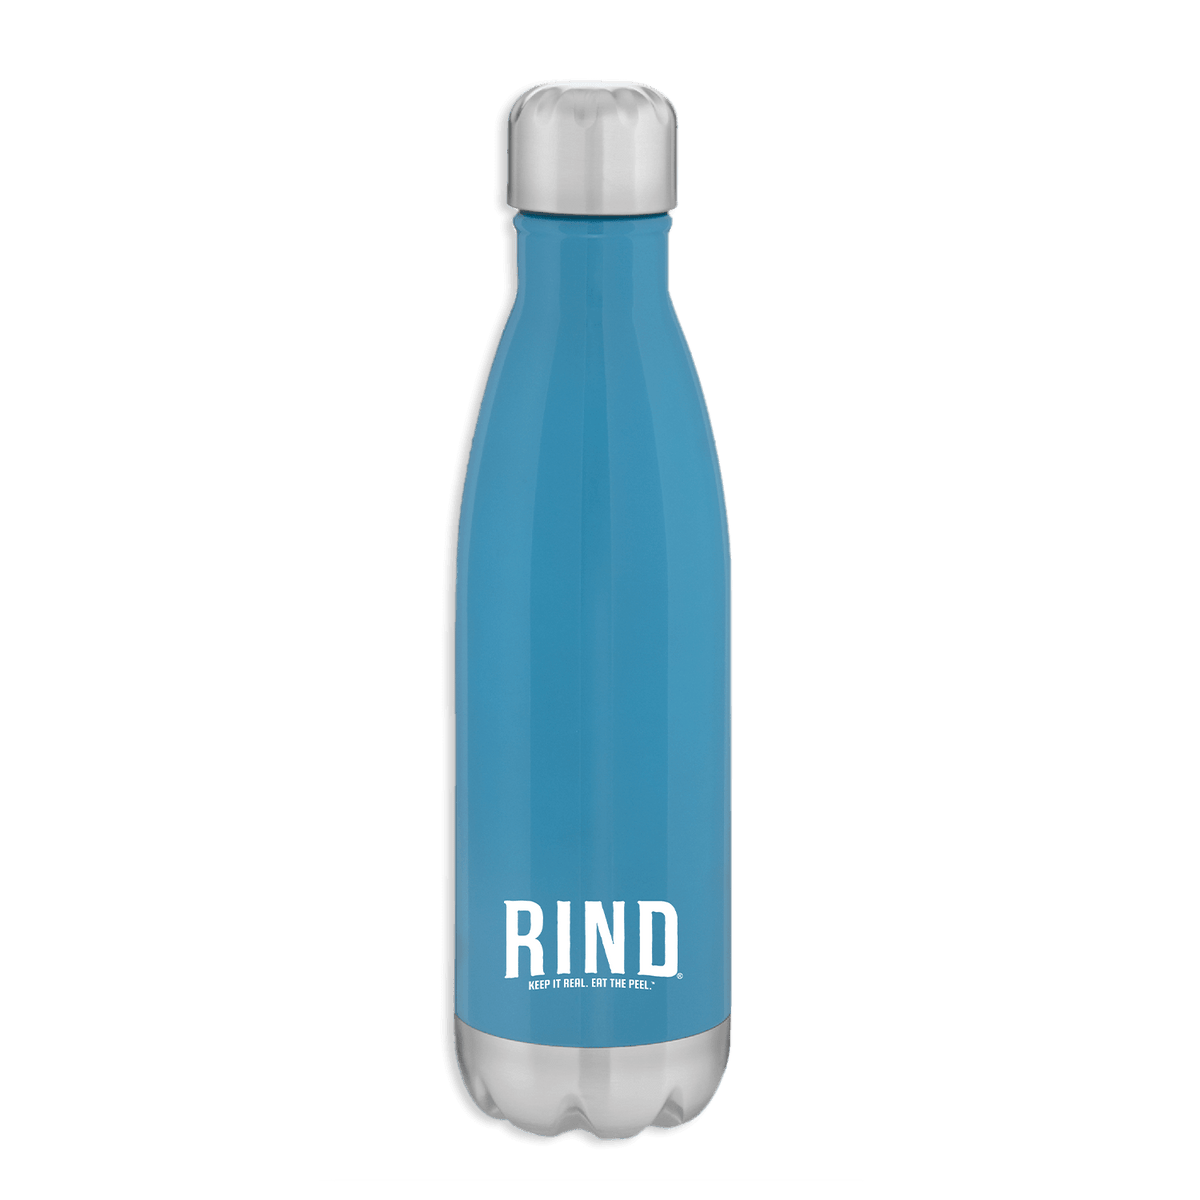 RIND Stainless Steel Water Bottle